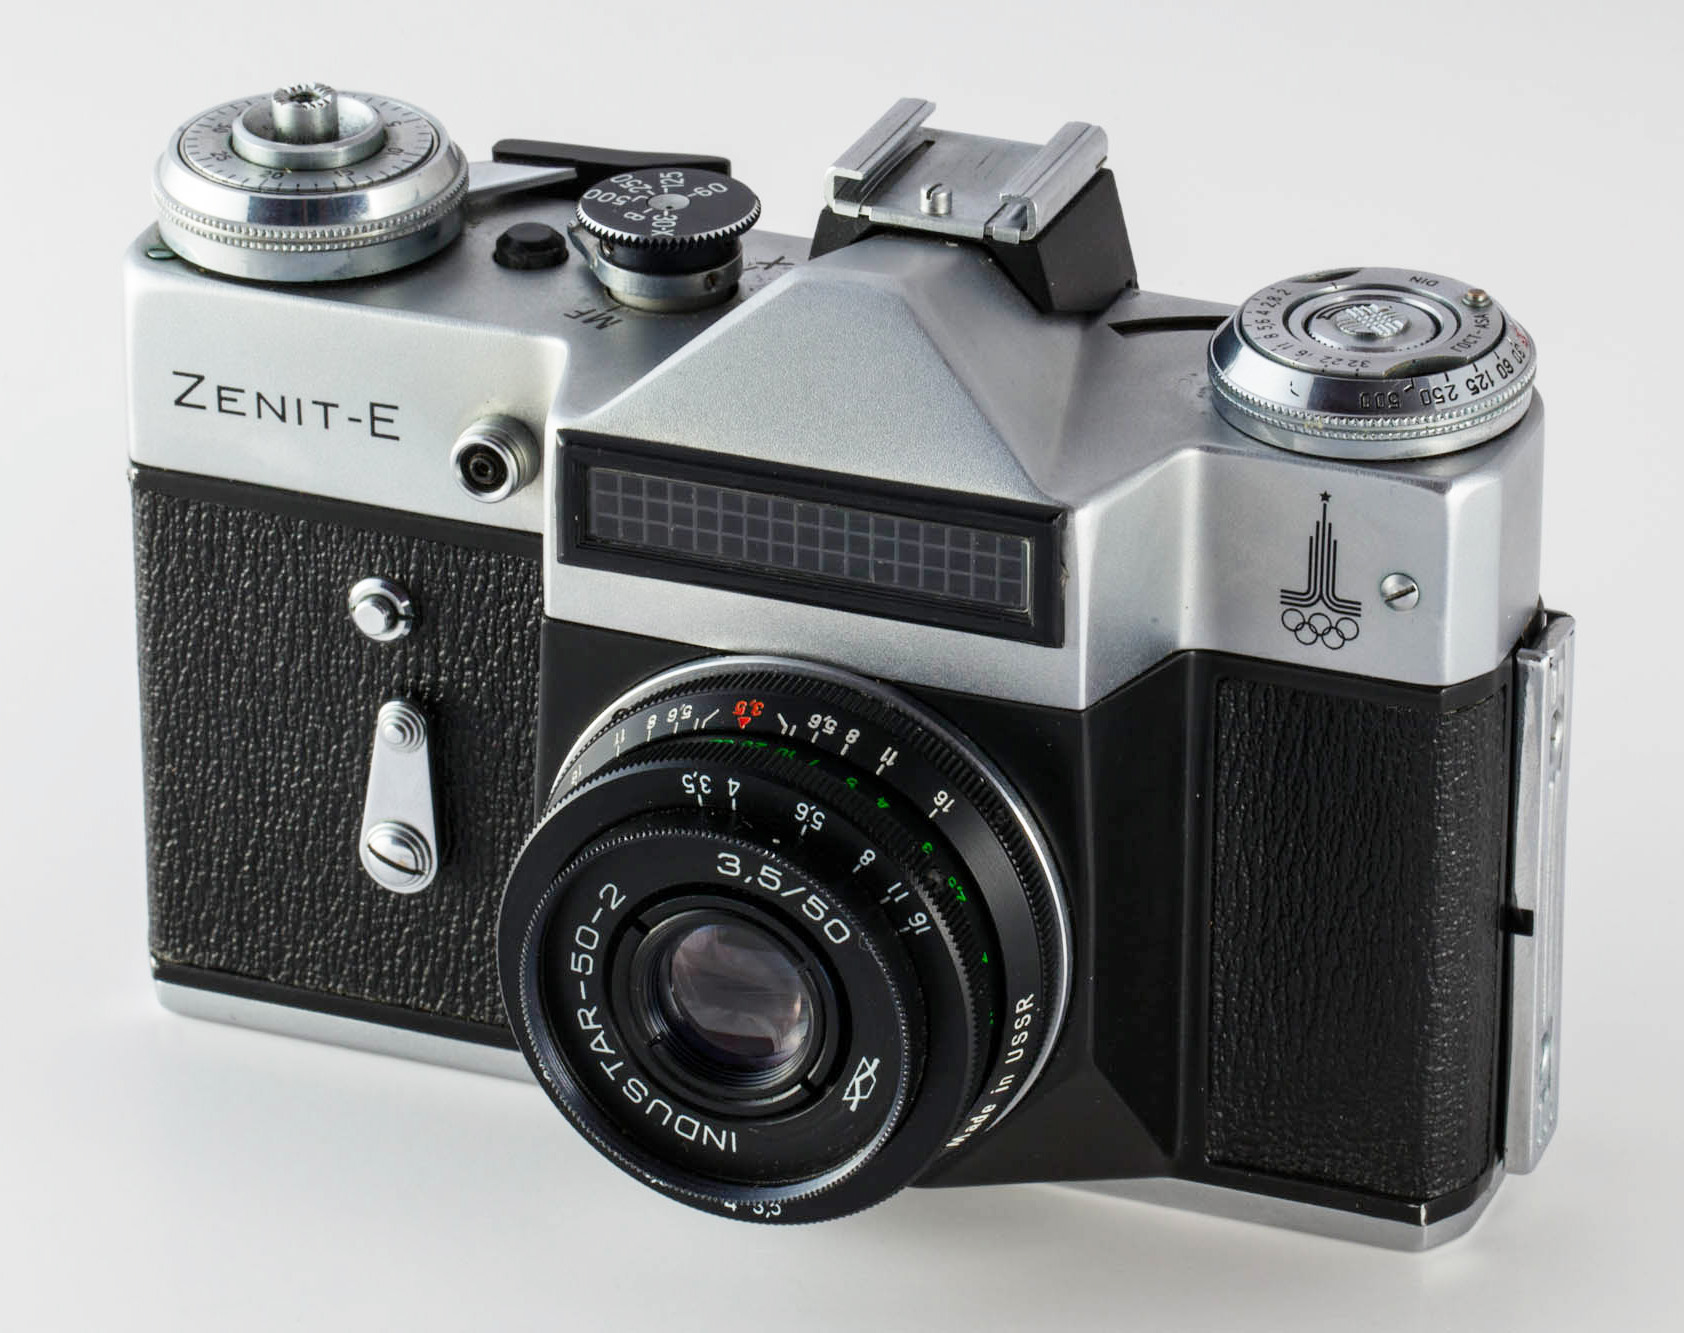 Zenit-E camera (Pic: Alvintrusty/Wikimedia Commons)